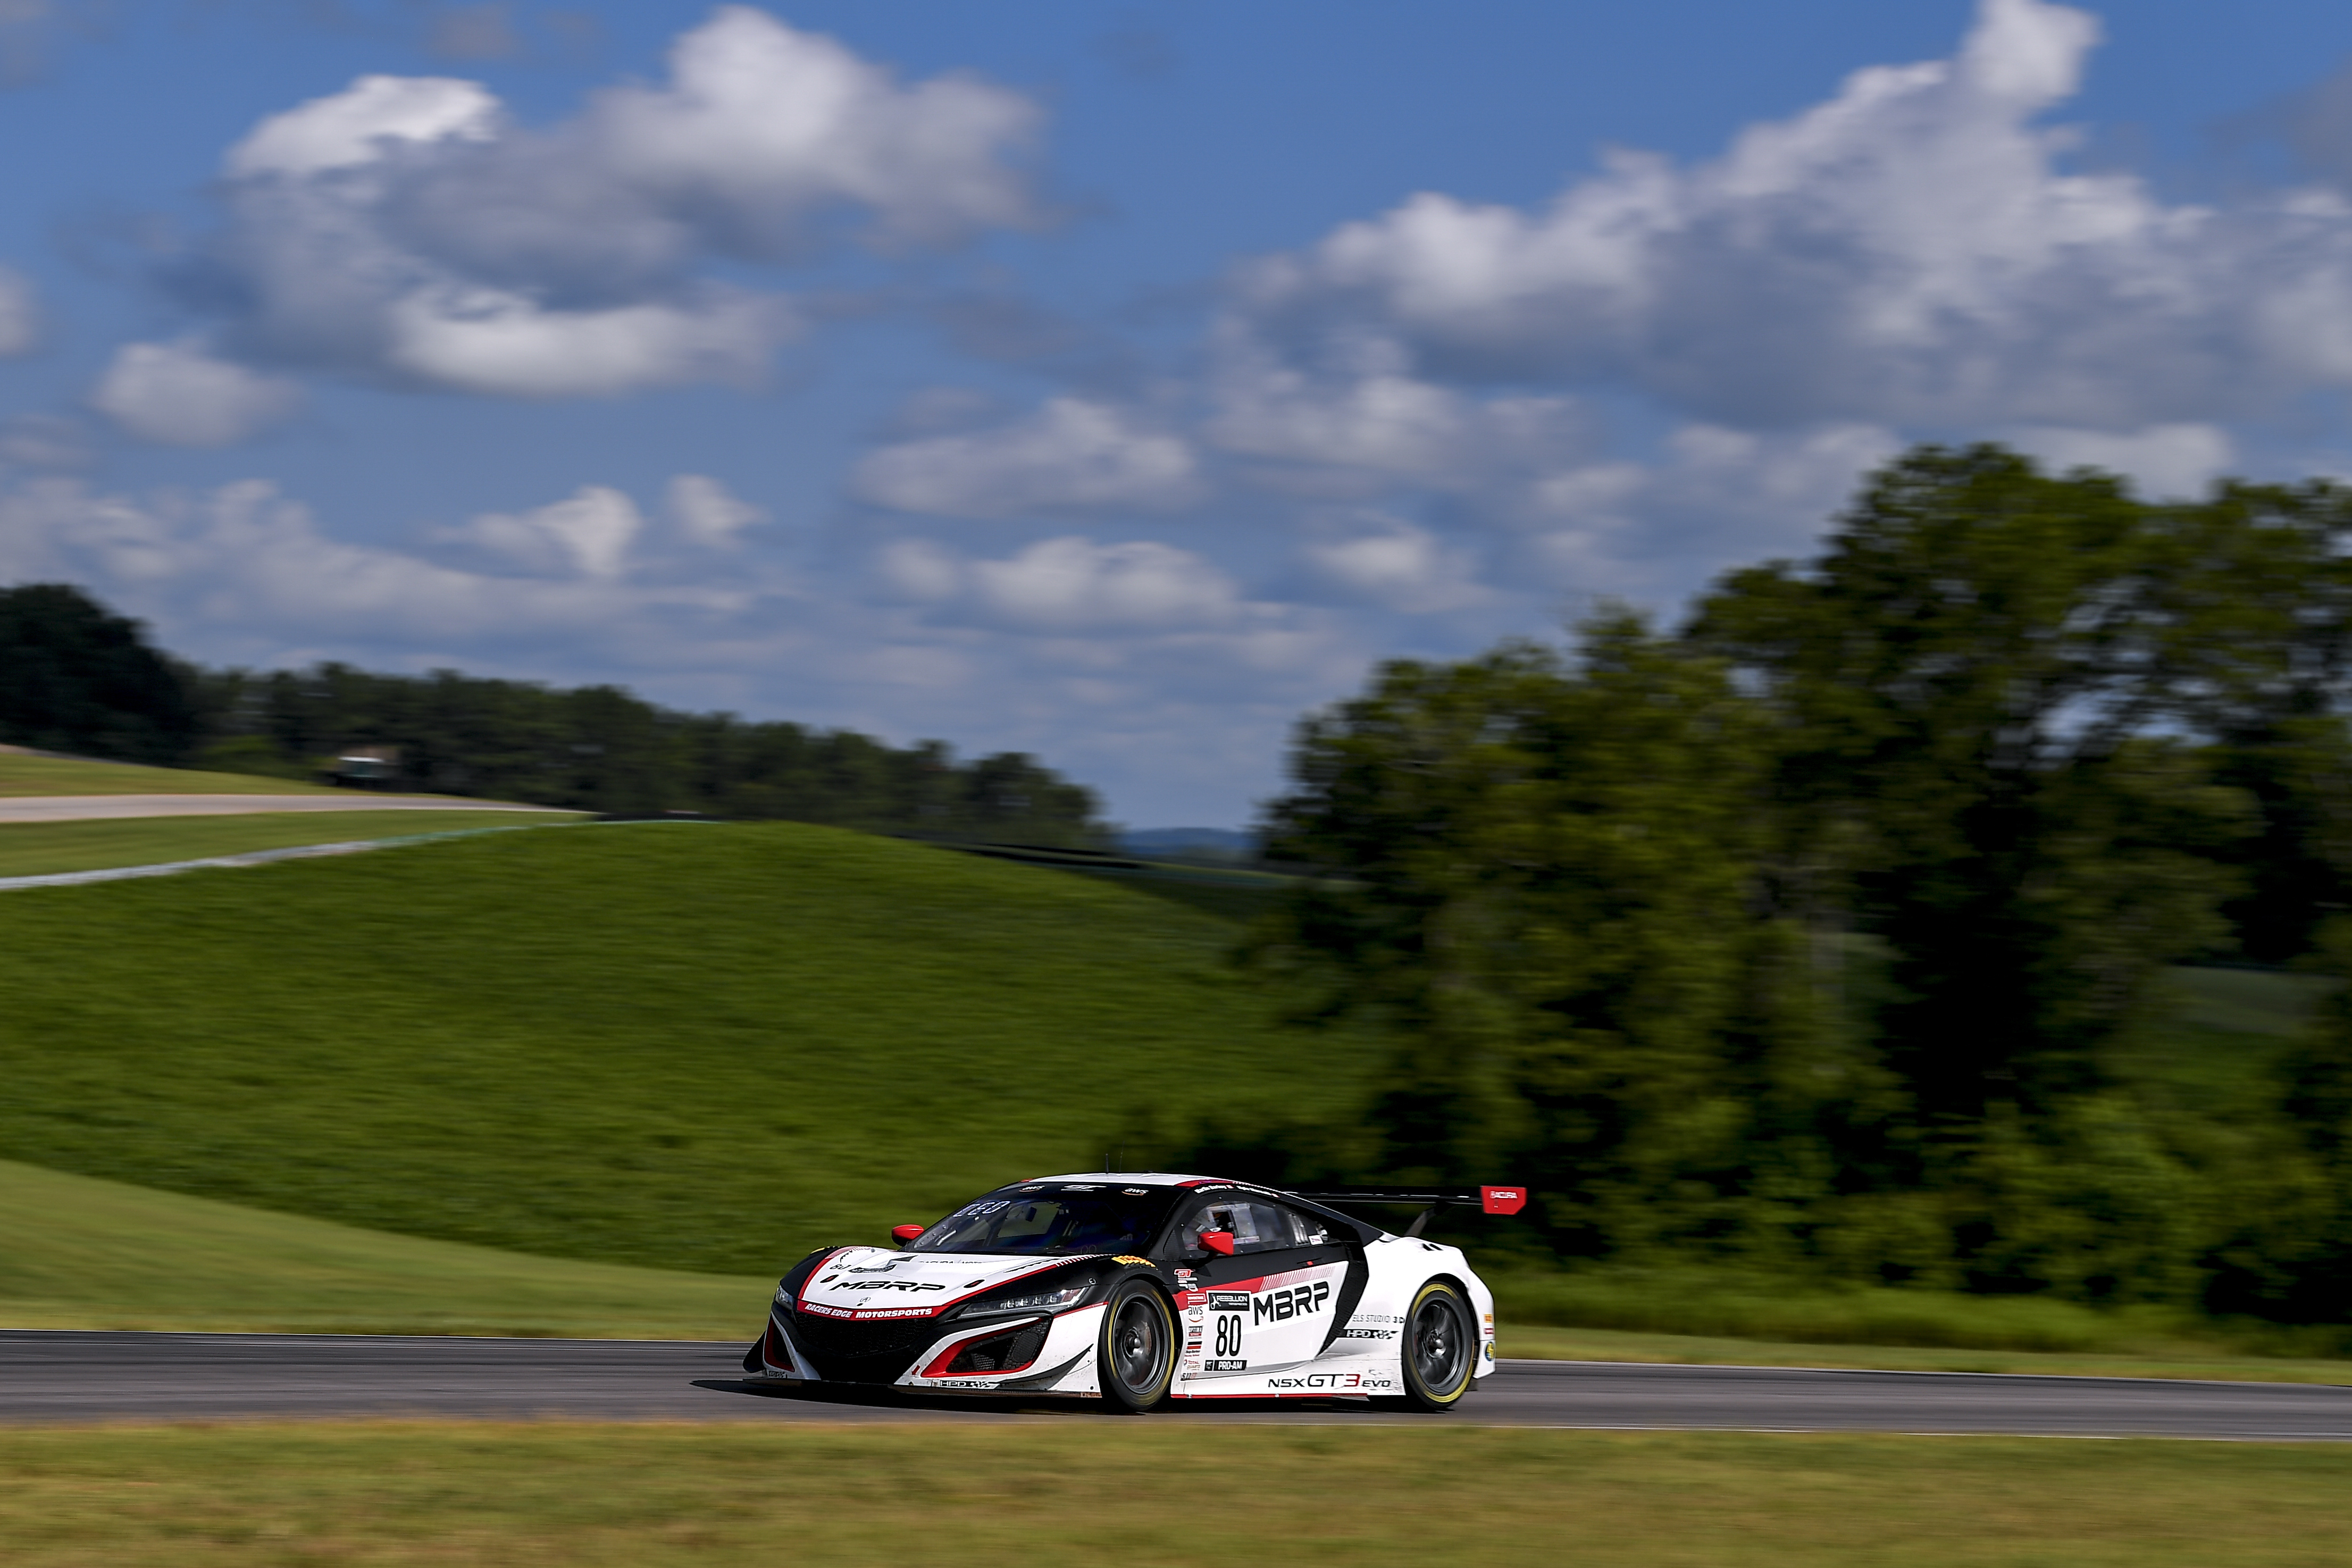 No 80 MBRP Acura NSX GT3 Evo